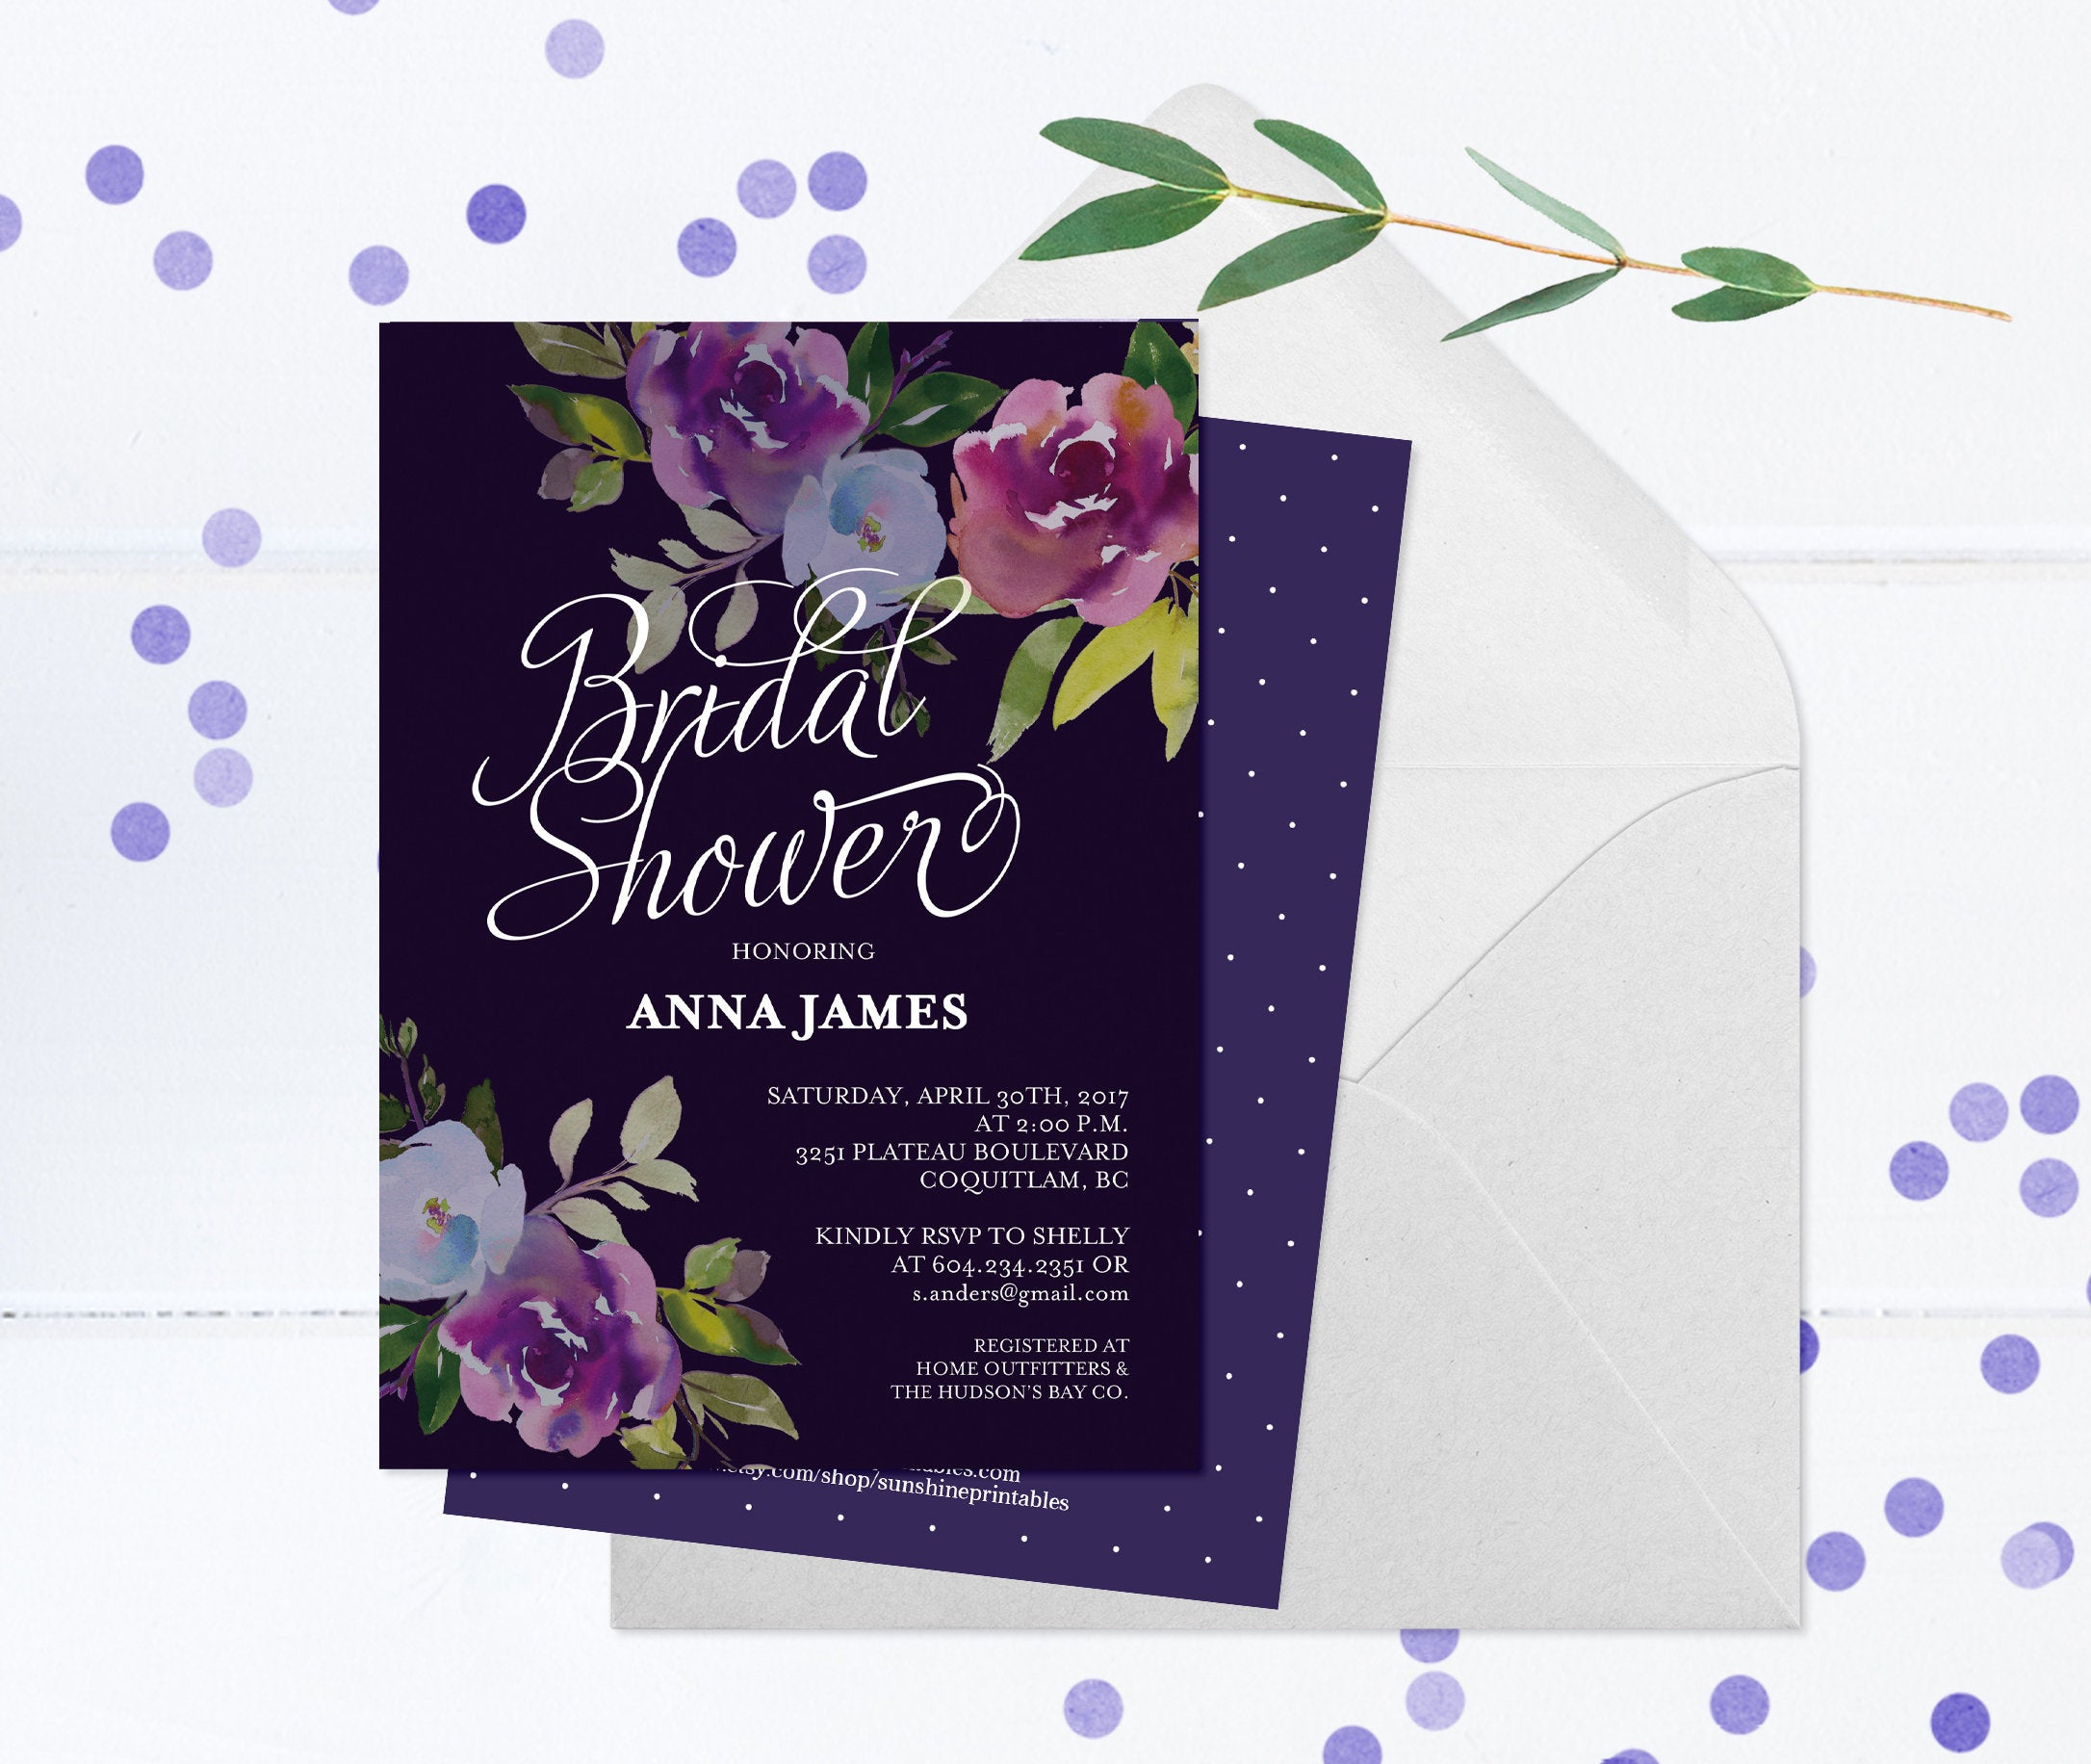 50th Birthday Invitation Moody Floral Dark Purple Invite Printed